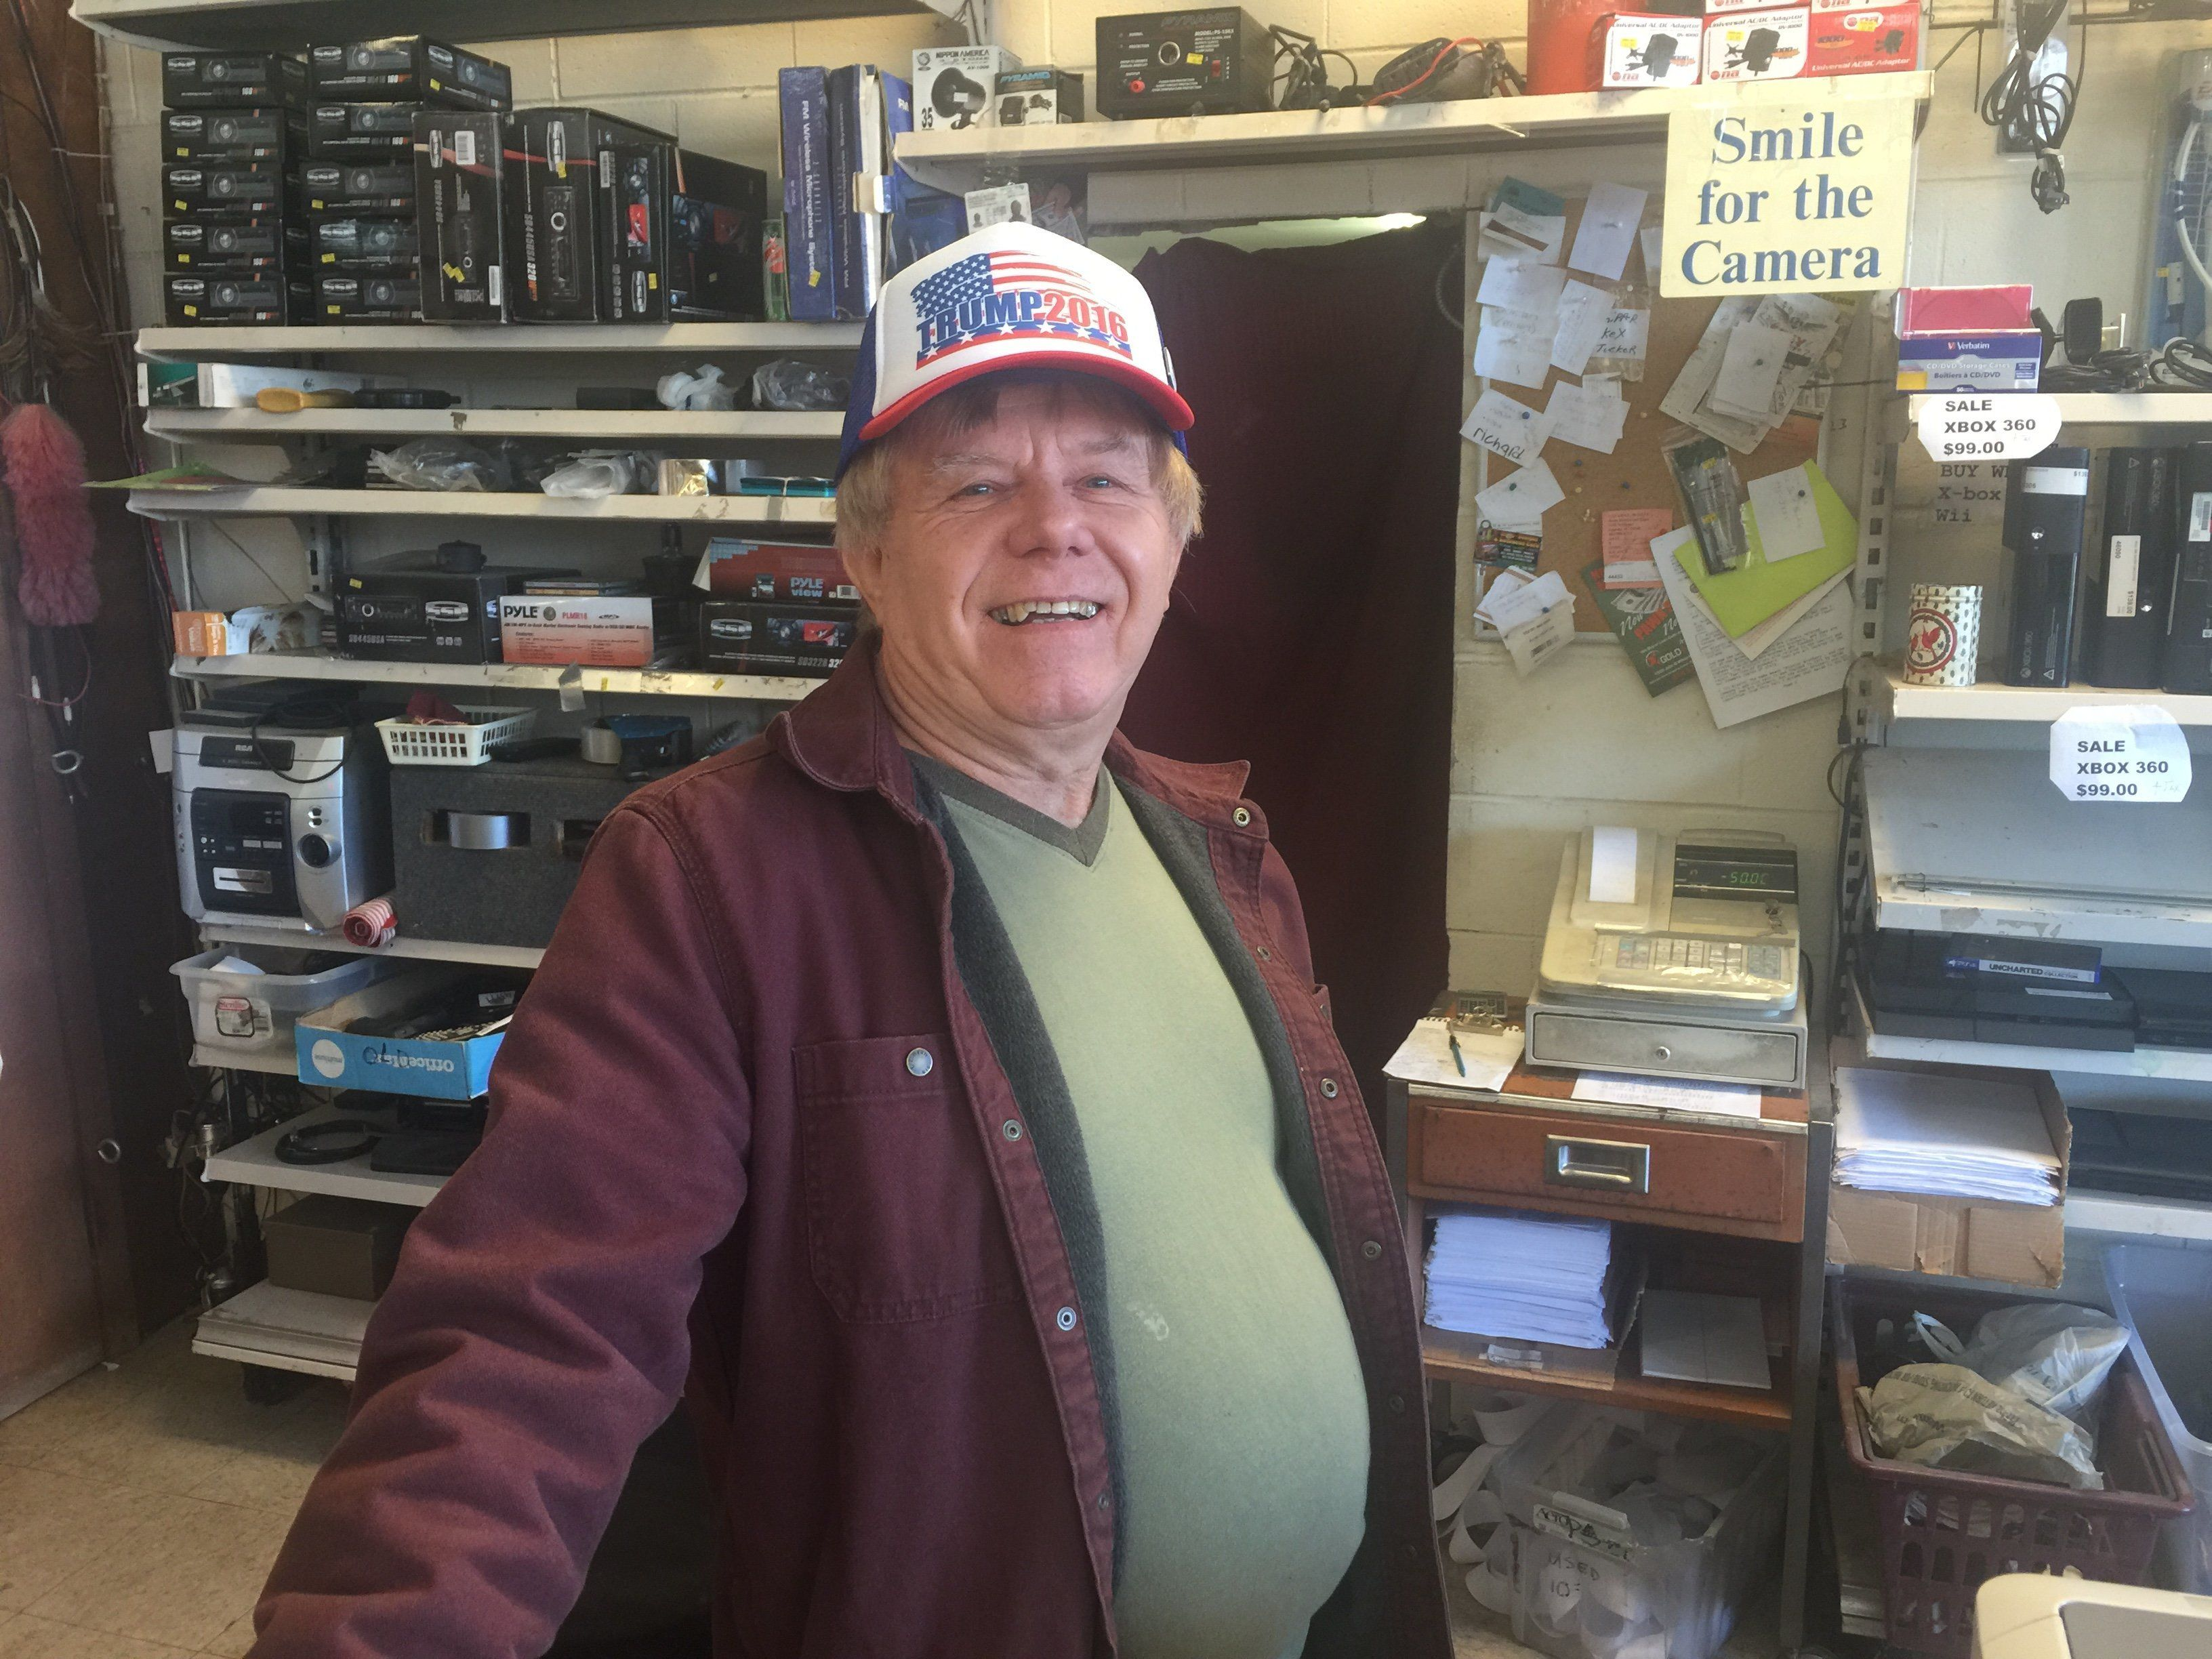 Richard Weisner, the owner of Rich's Pawn Shop in Laurens, South Carolina, is a big Donald Trump supporter.